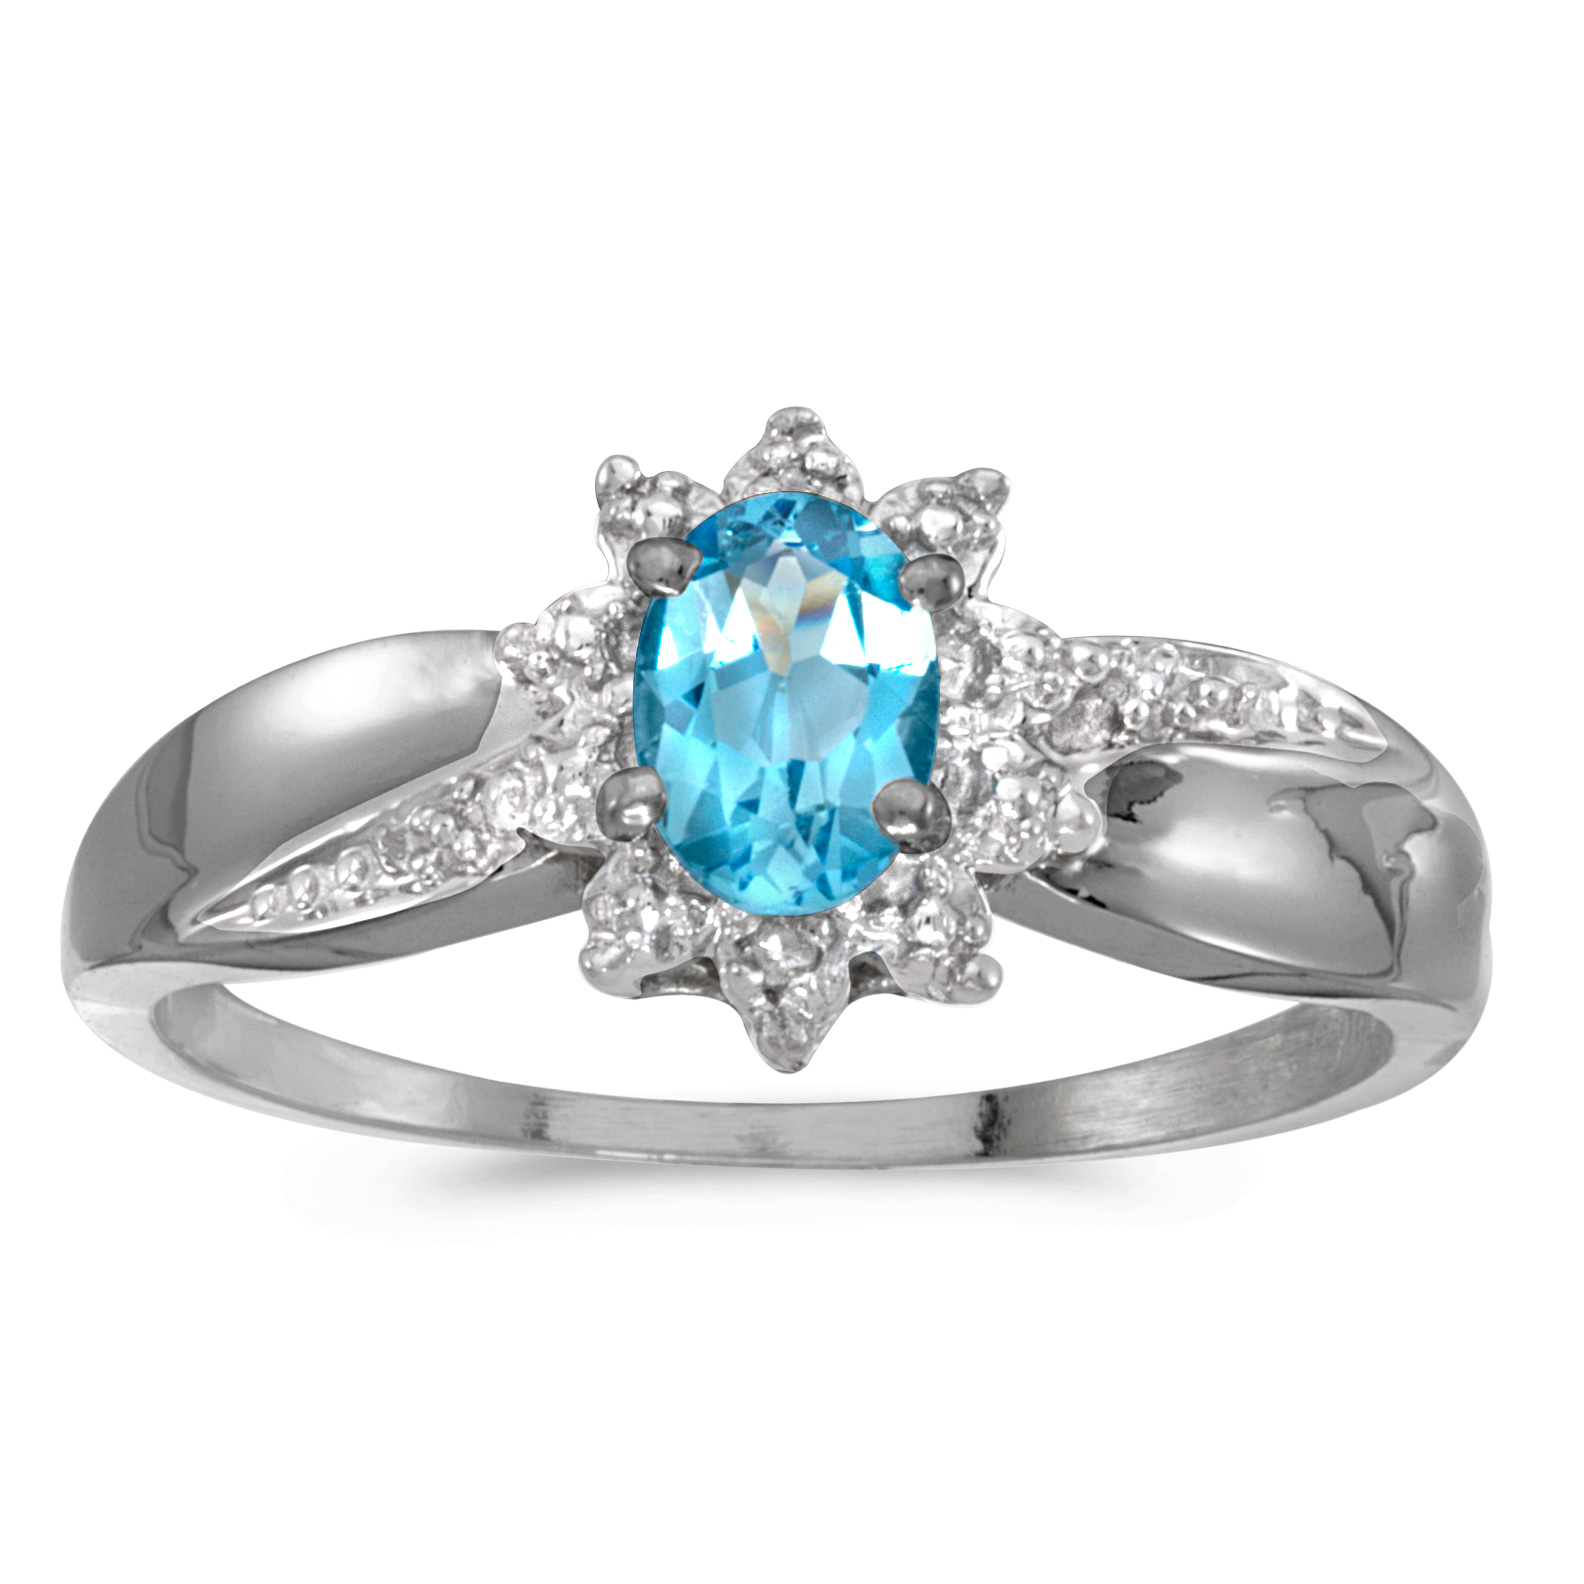 10k White Gold Oval Blue Topaz And Diamond Ring by